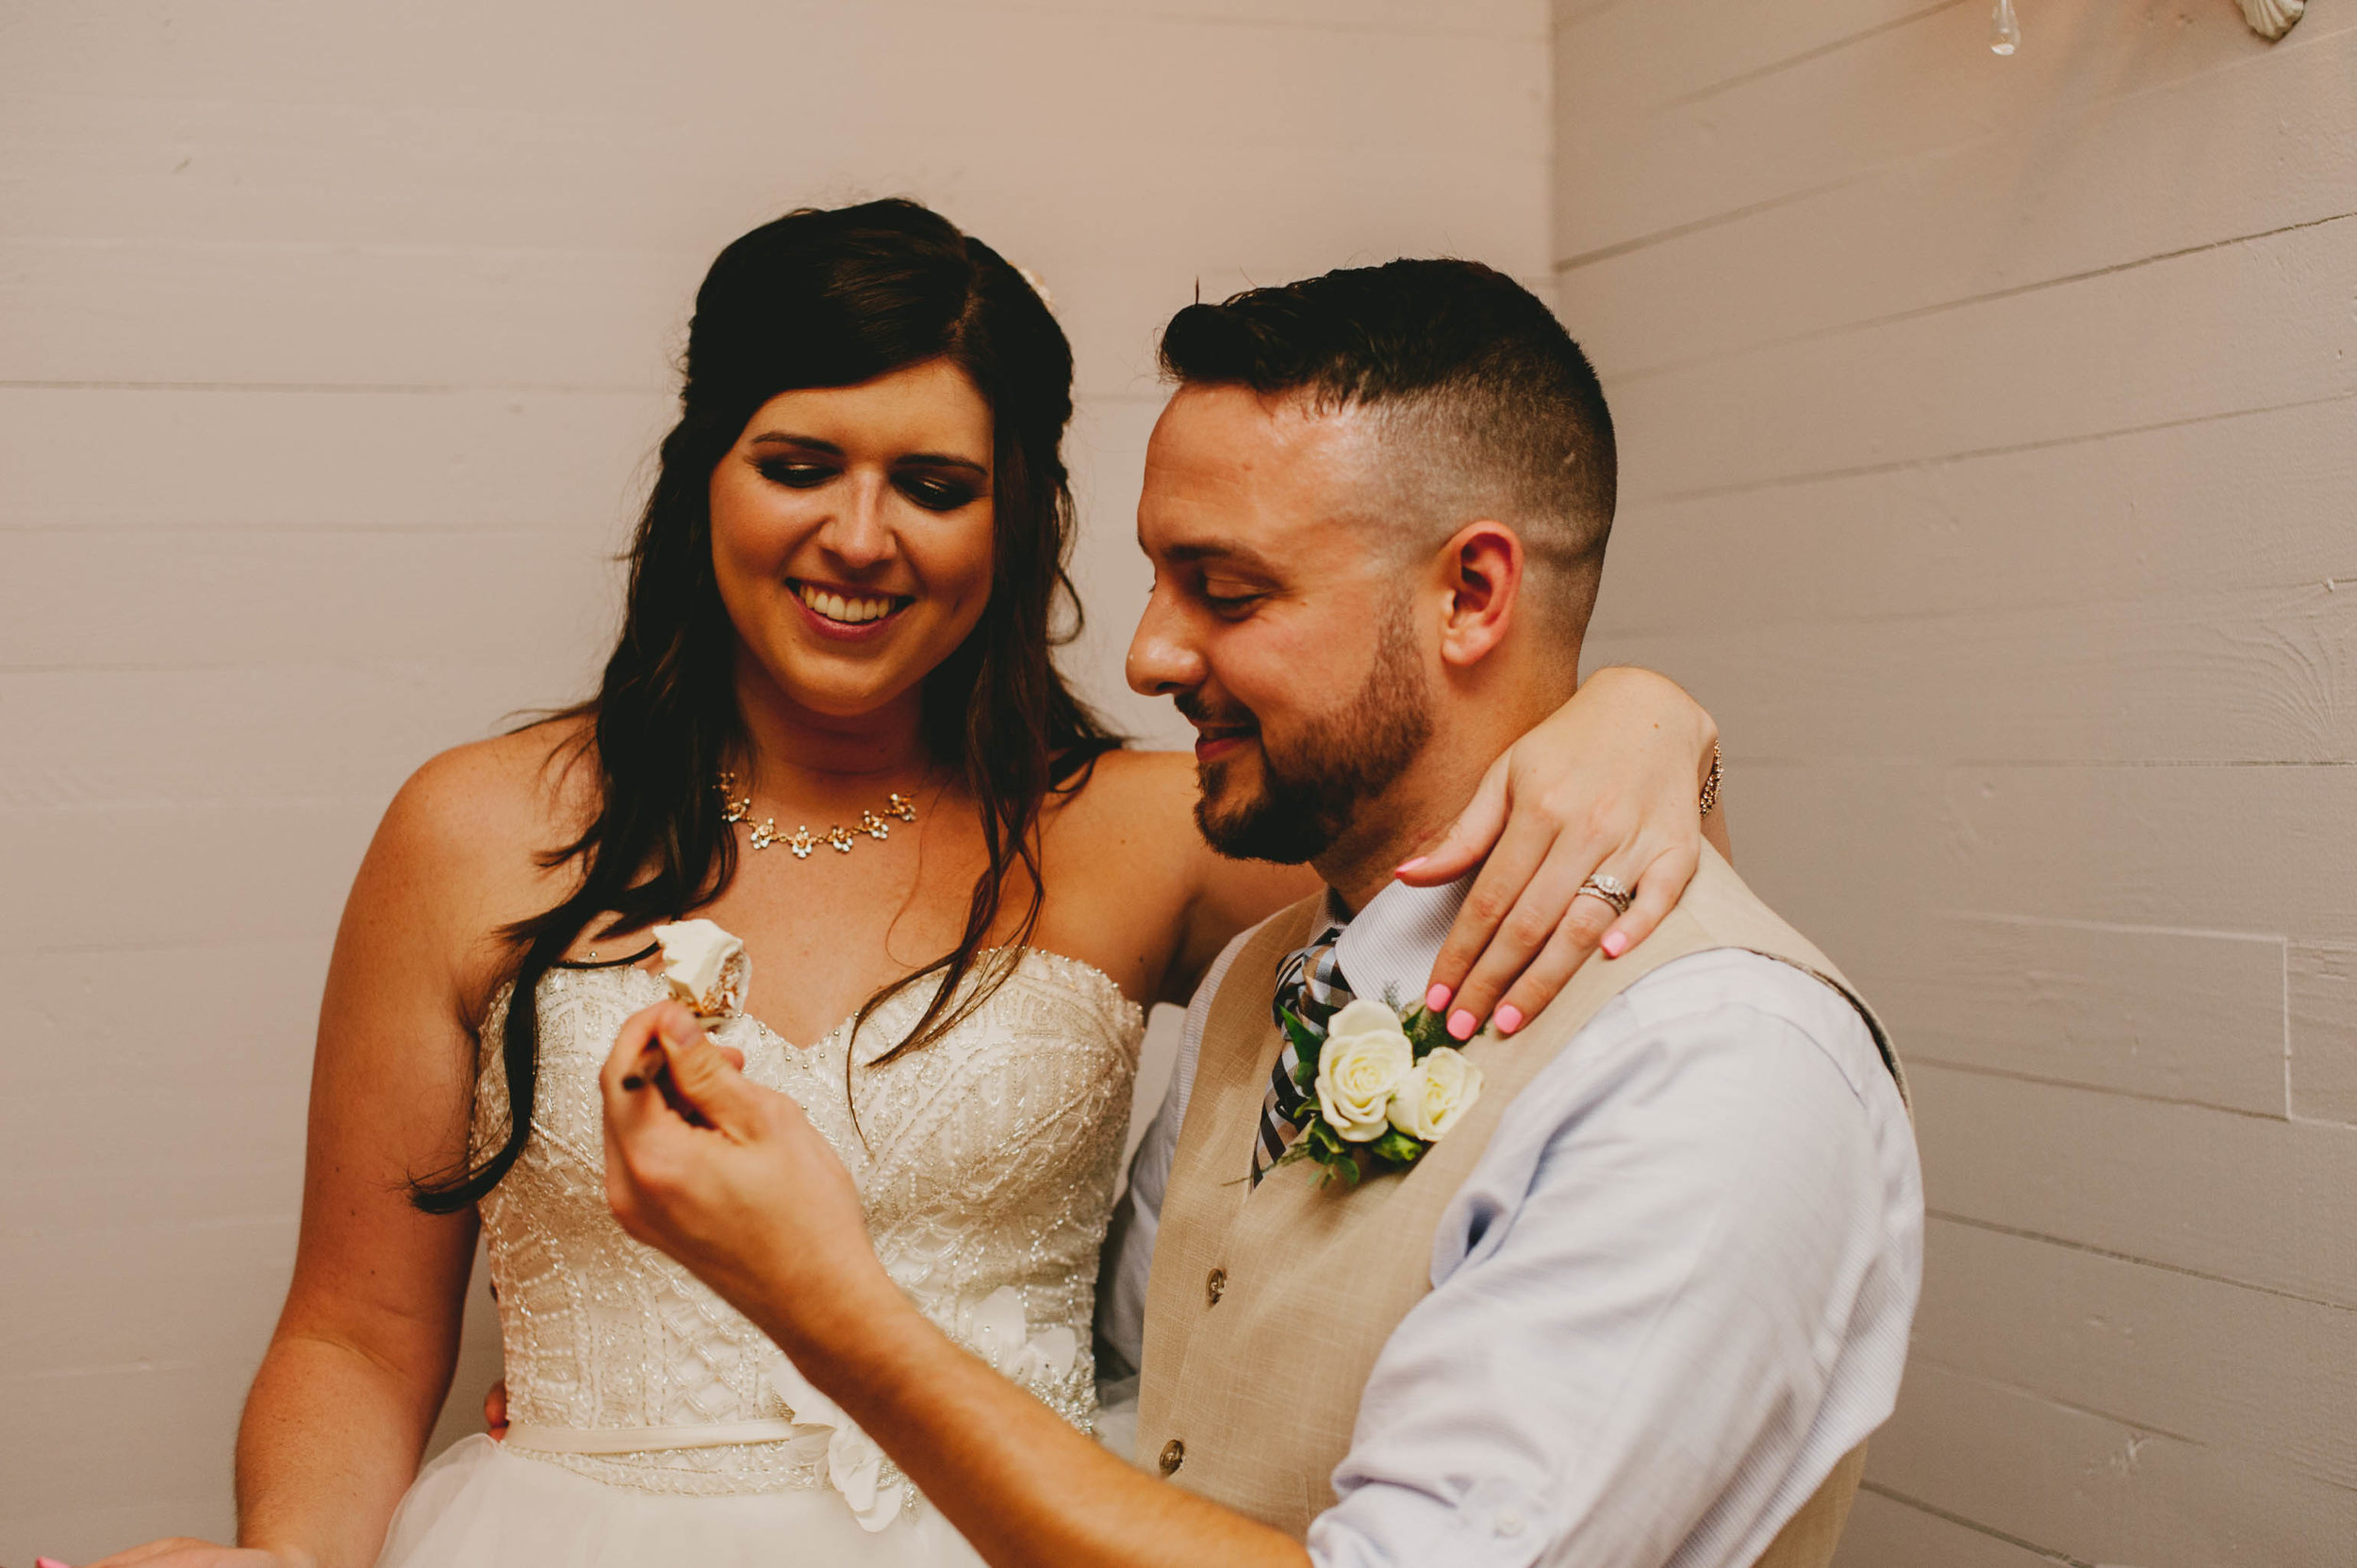 bride and groom get ready for eating their wedding cake